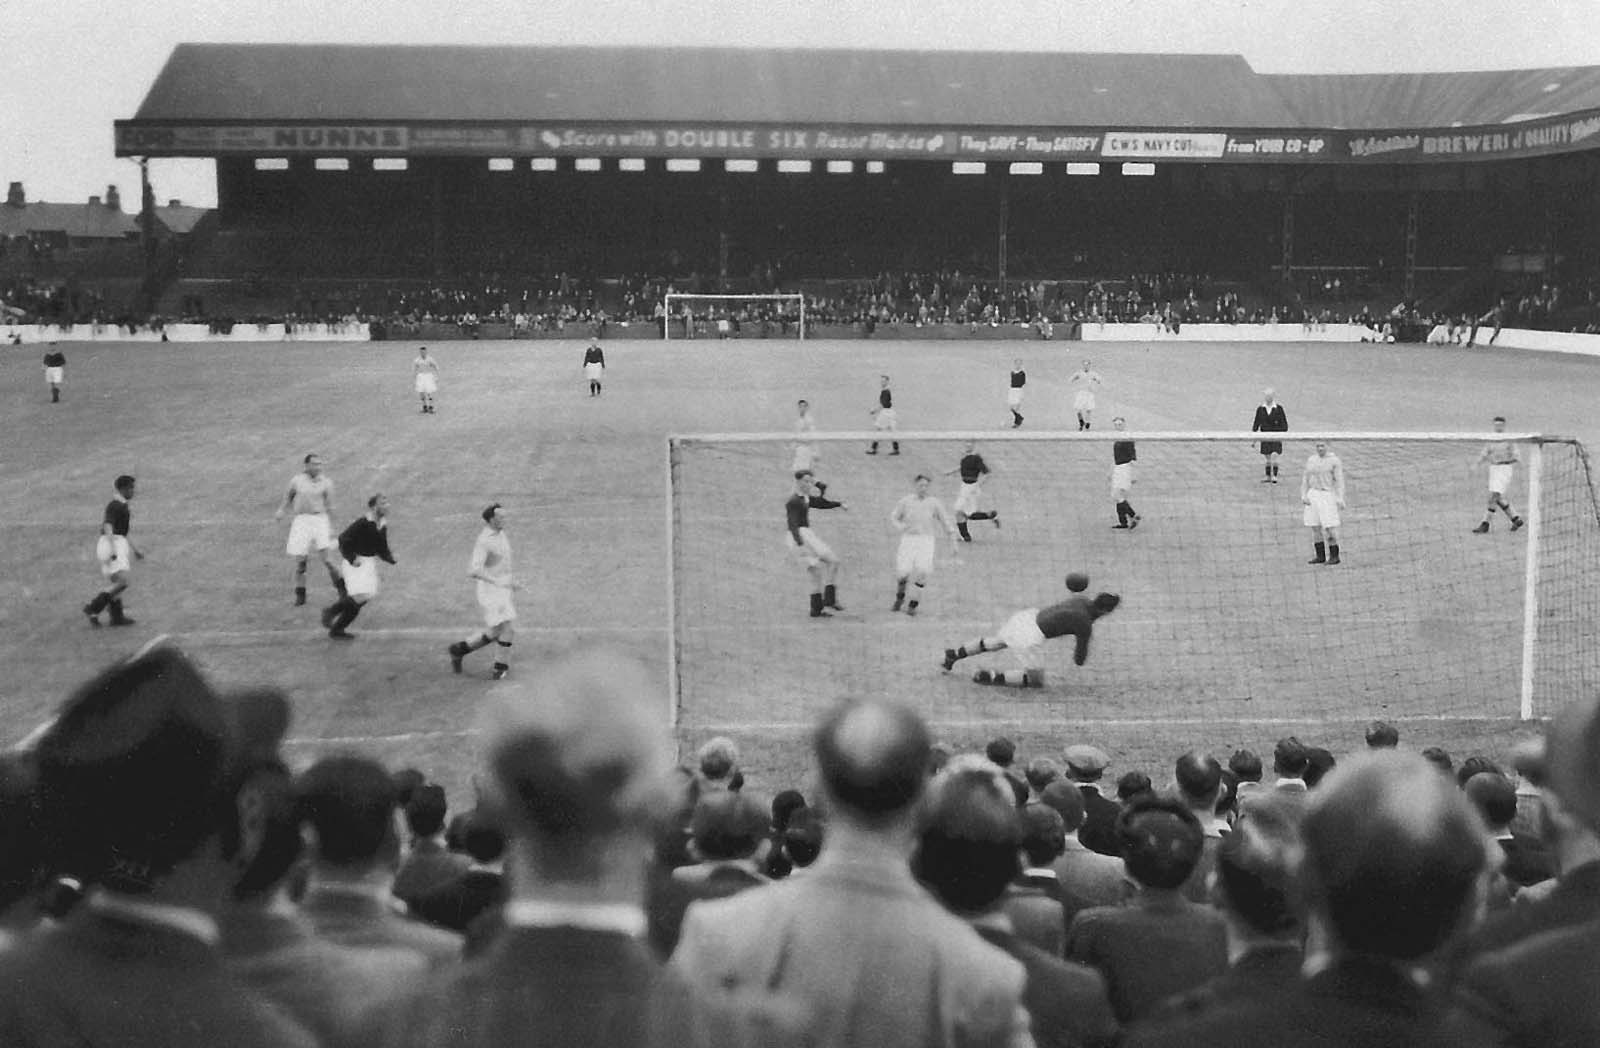 balck and white photo taken across the heads of a crowd ina football terrace watching a goal mouth scramble on the football pitch